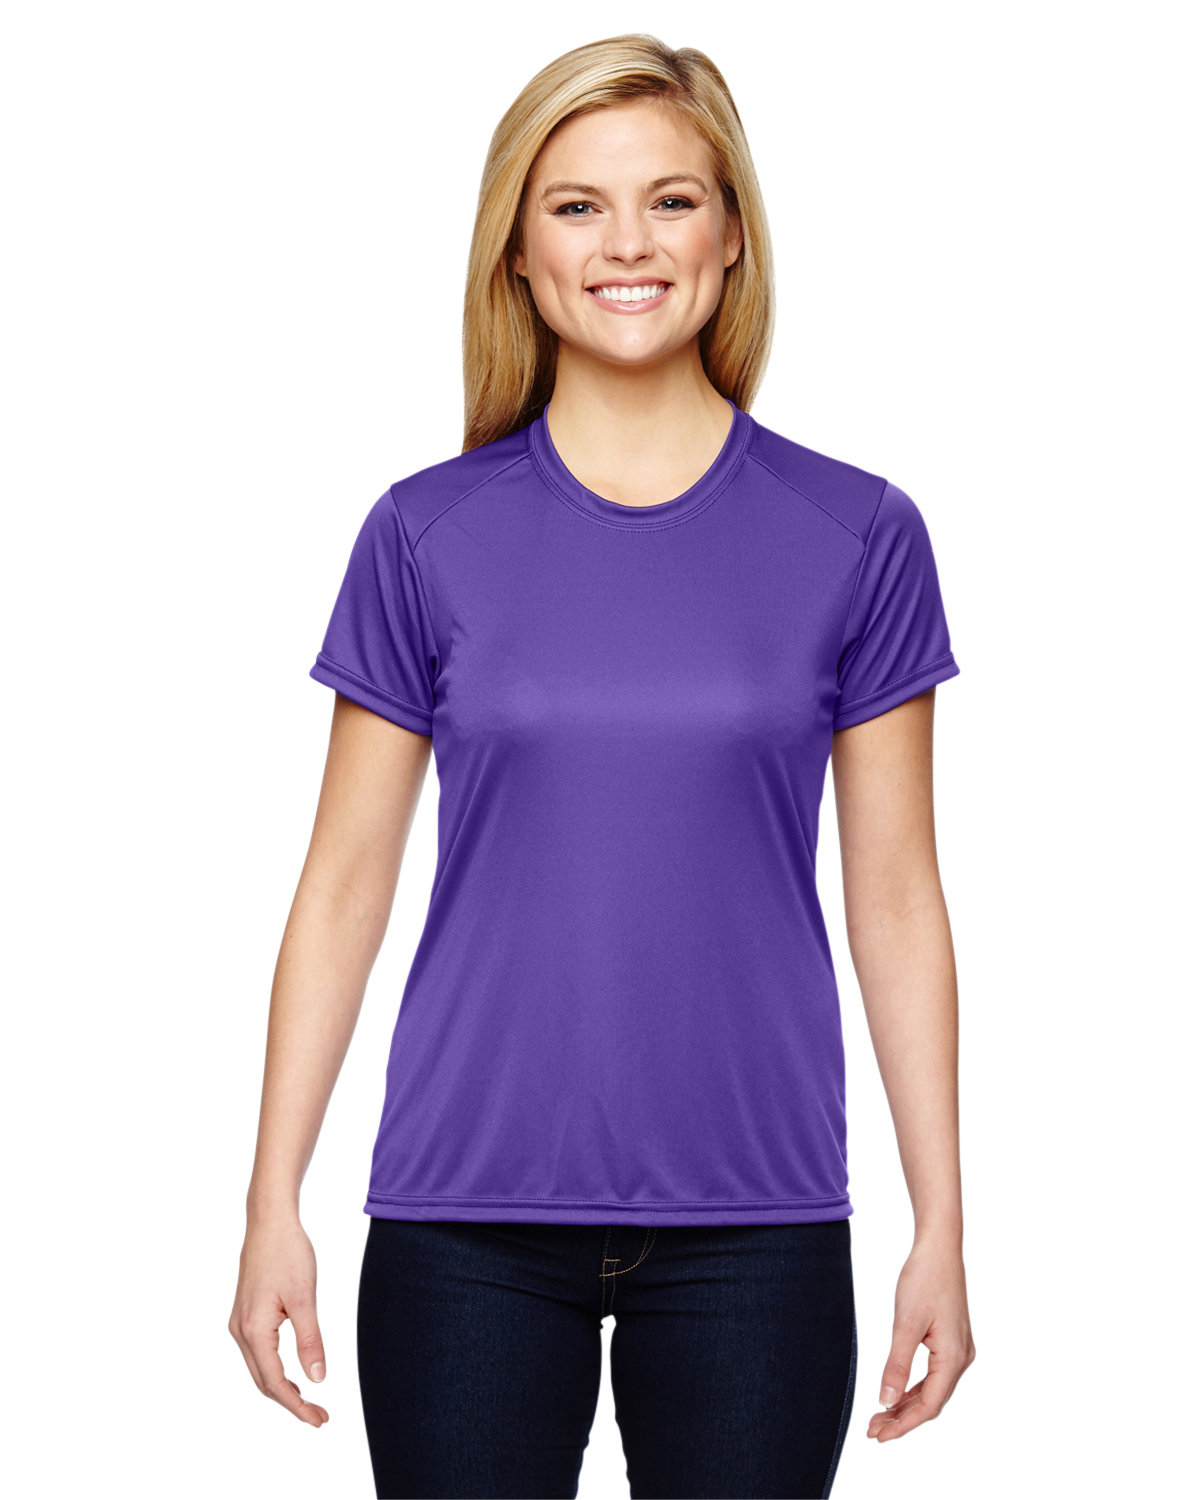 A4 Ladies' Cooling Performance T-Shirt PURPLE